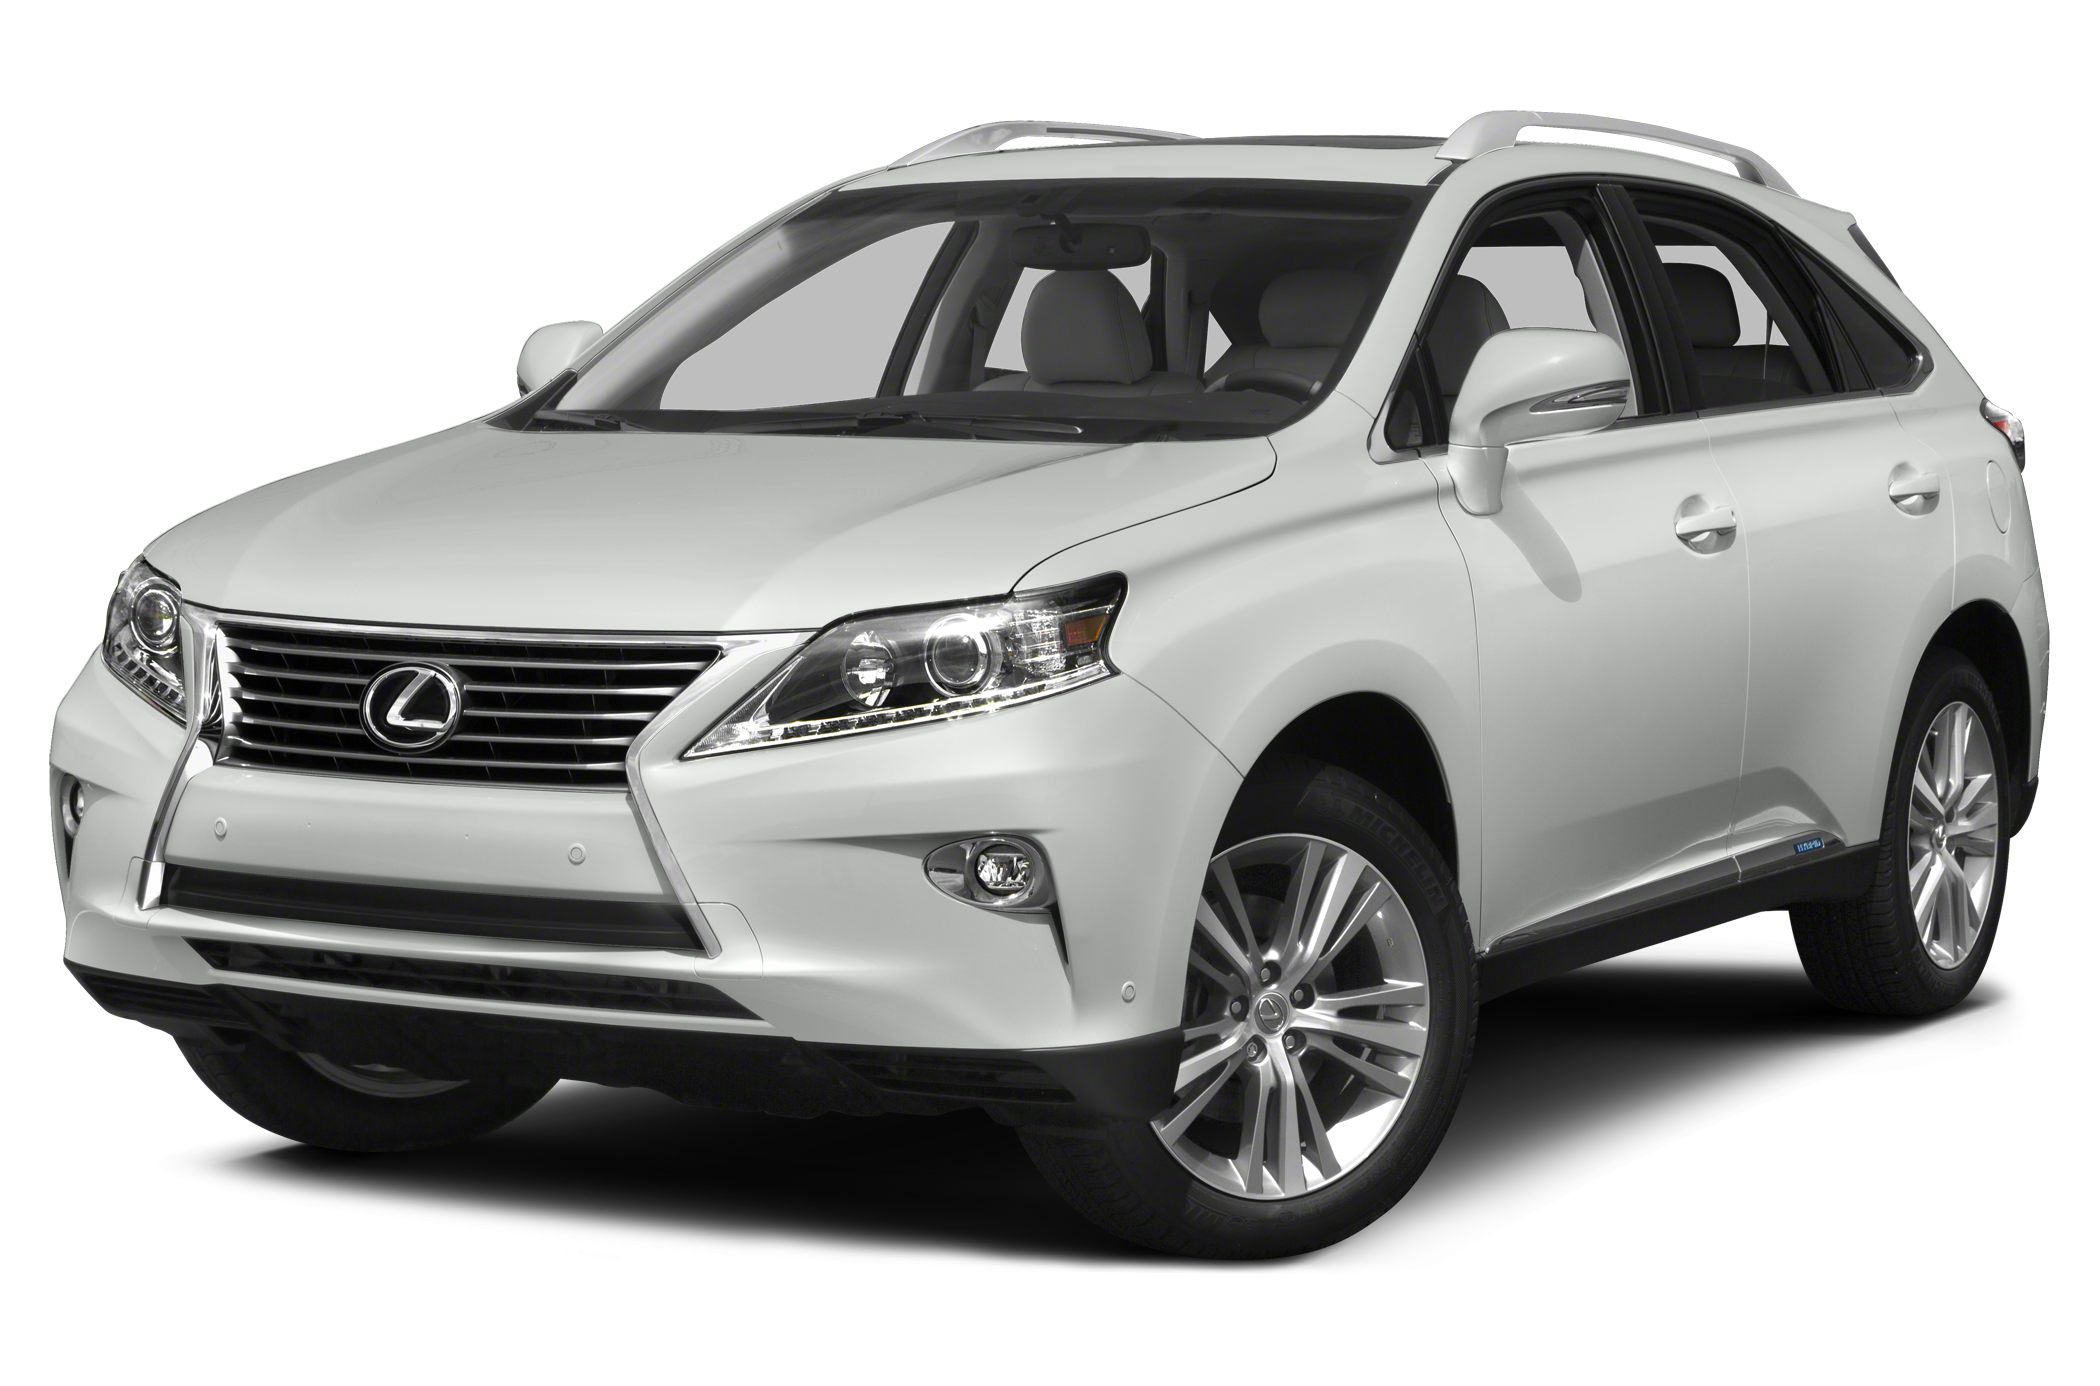 2015 Lexus RX 450h Base SUV for sale in Rochester for $55,263 with 0 miles.